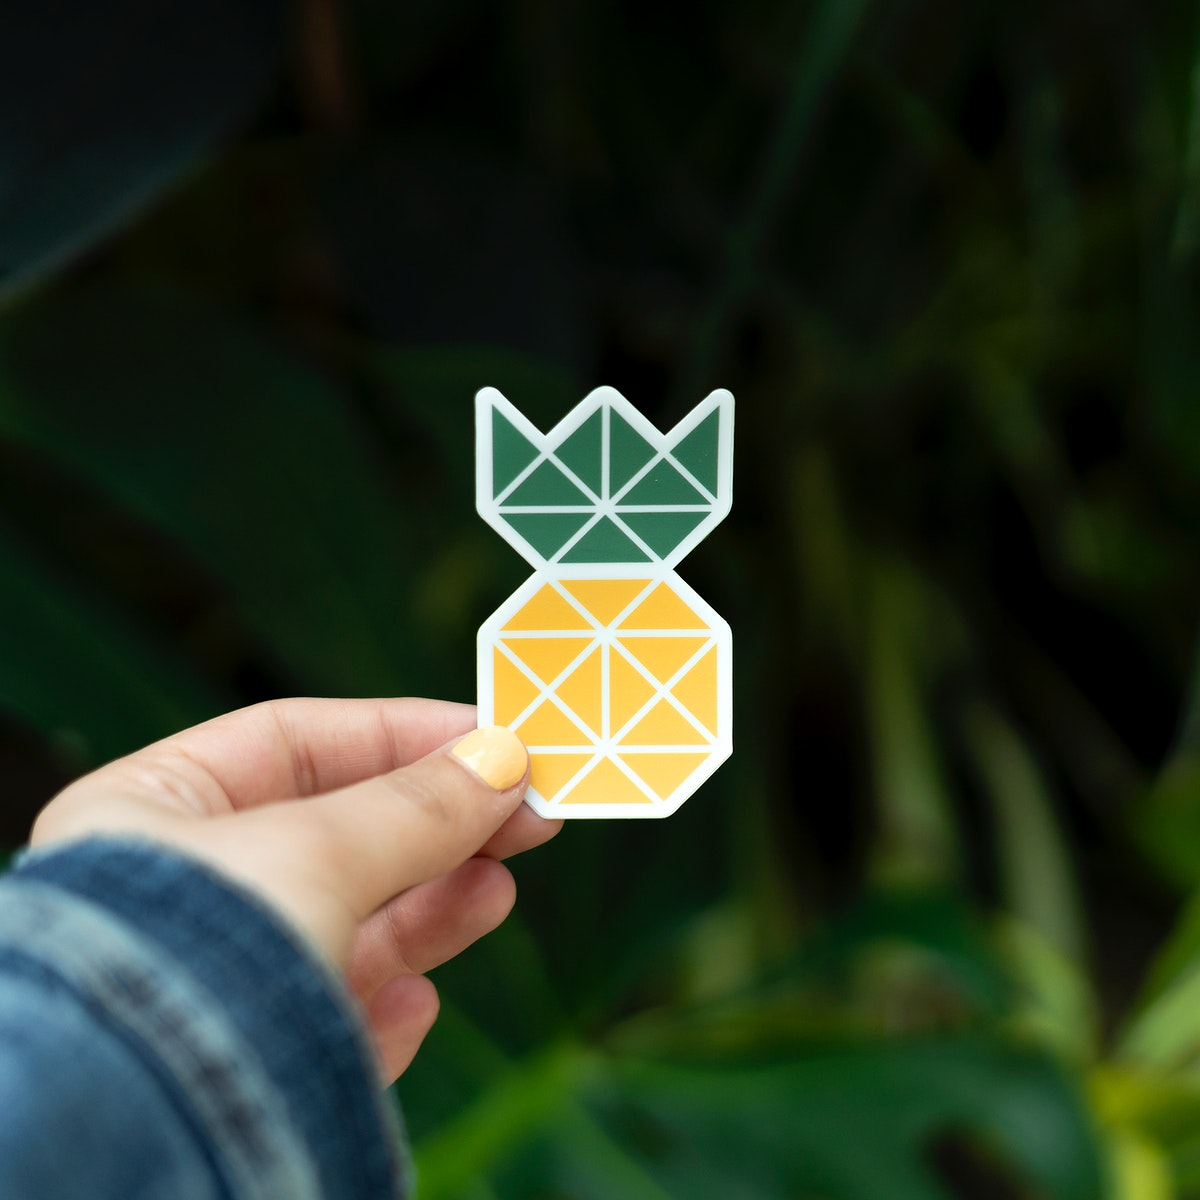 Pineapple sticker held up outdoors